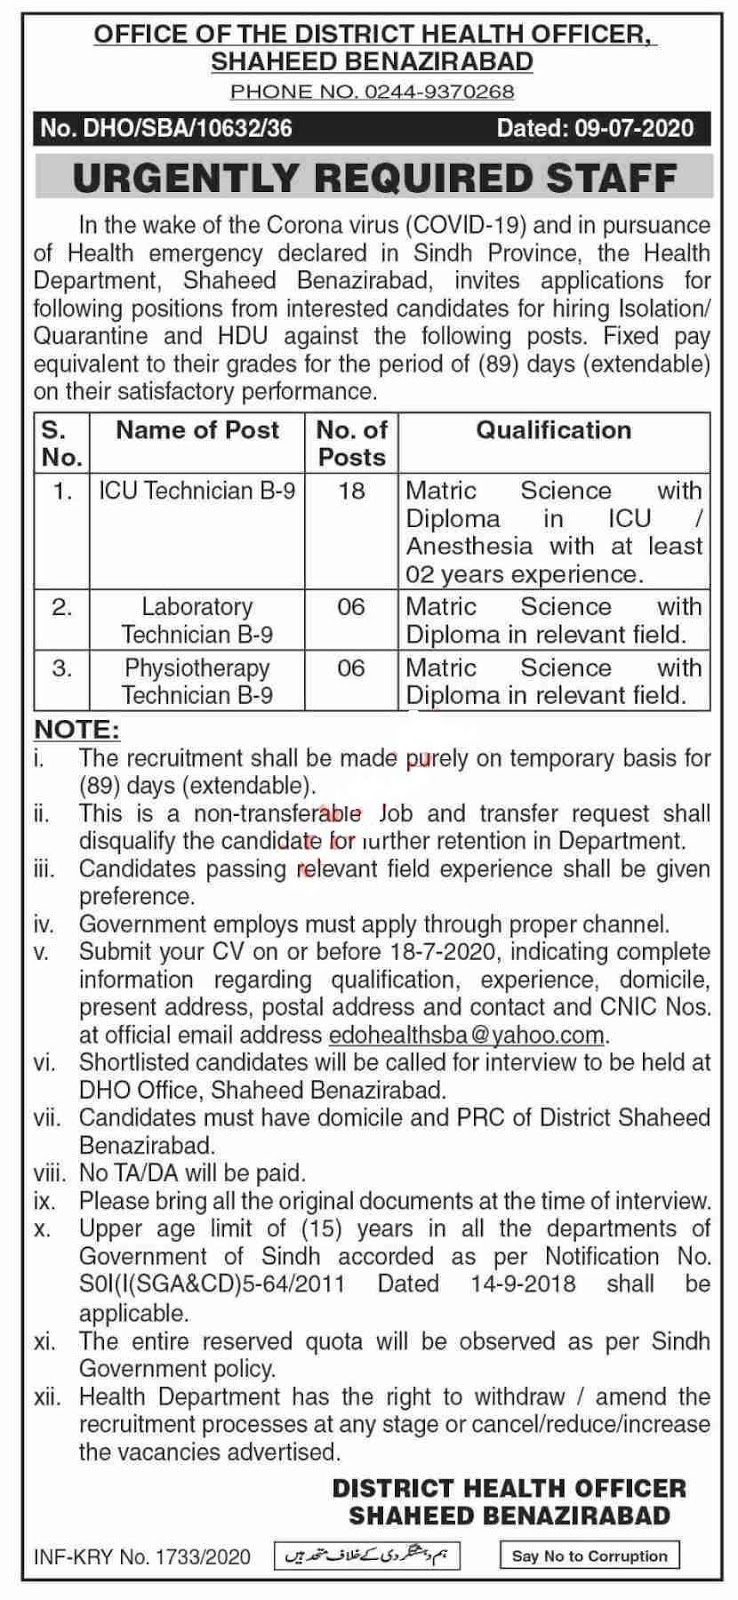 30 Jobs in Health Department of Sindh Jobs 2020 for ICU Technician, Technician, Laboratory Technician, Physiotherapy Technician